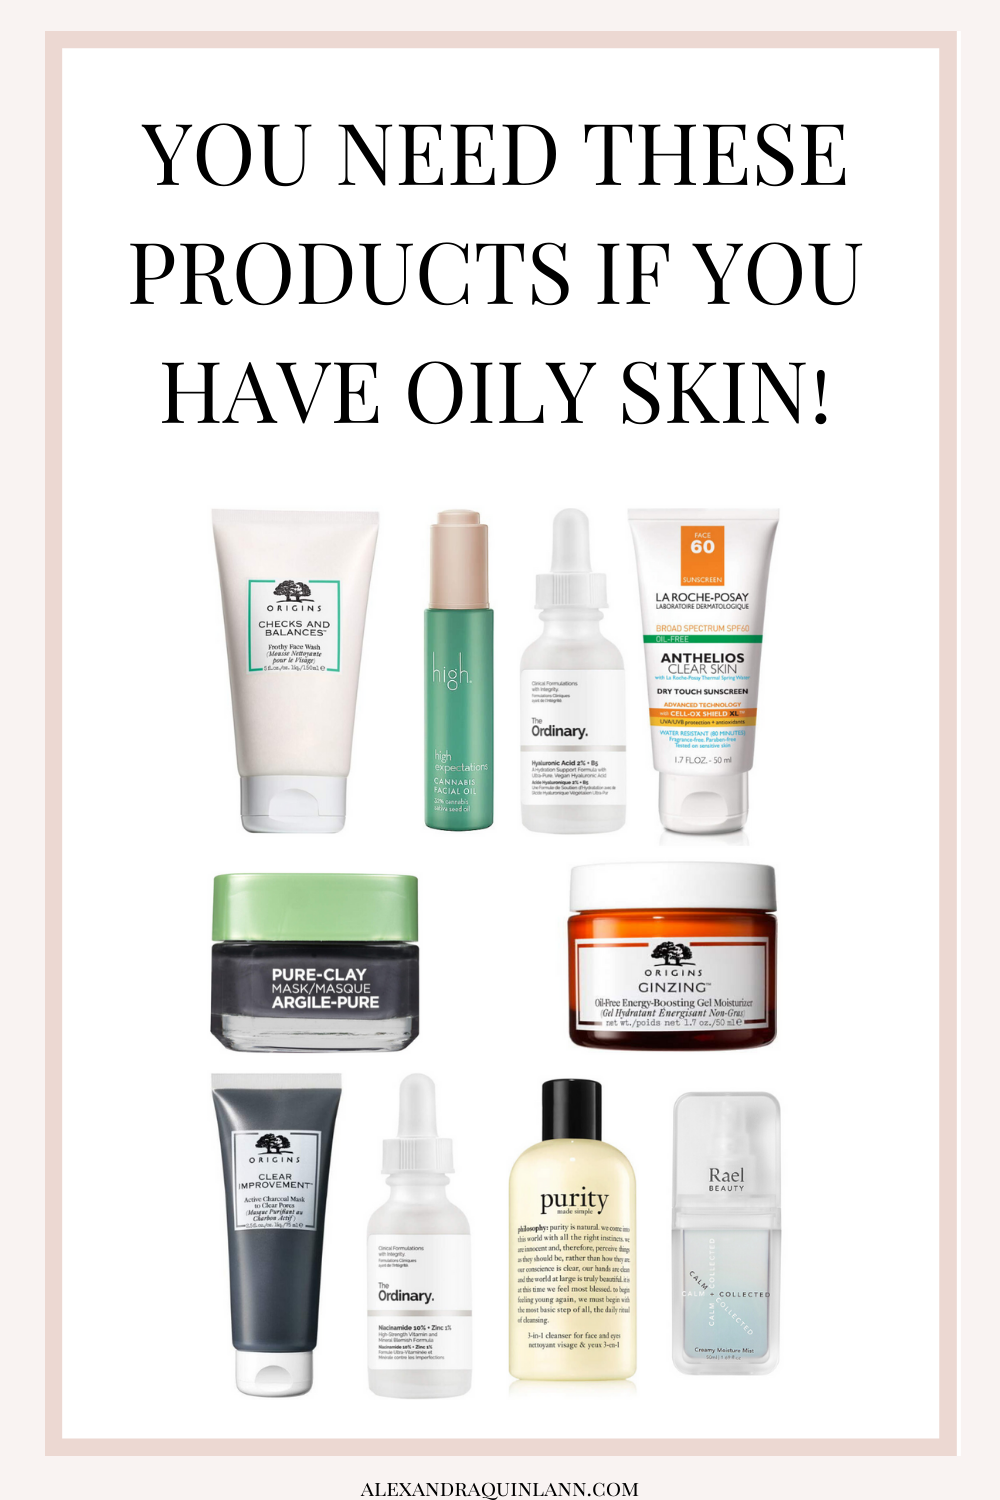 These Are The Skincare Products For Oily Skin You Need To Try In 2020 Skincare For Oily Skin Oily Skin Best Skincare Products